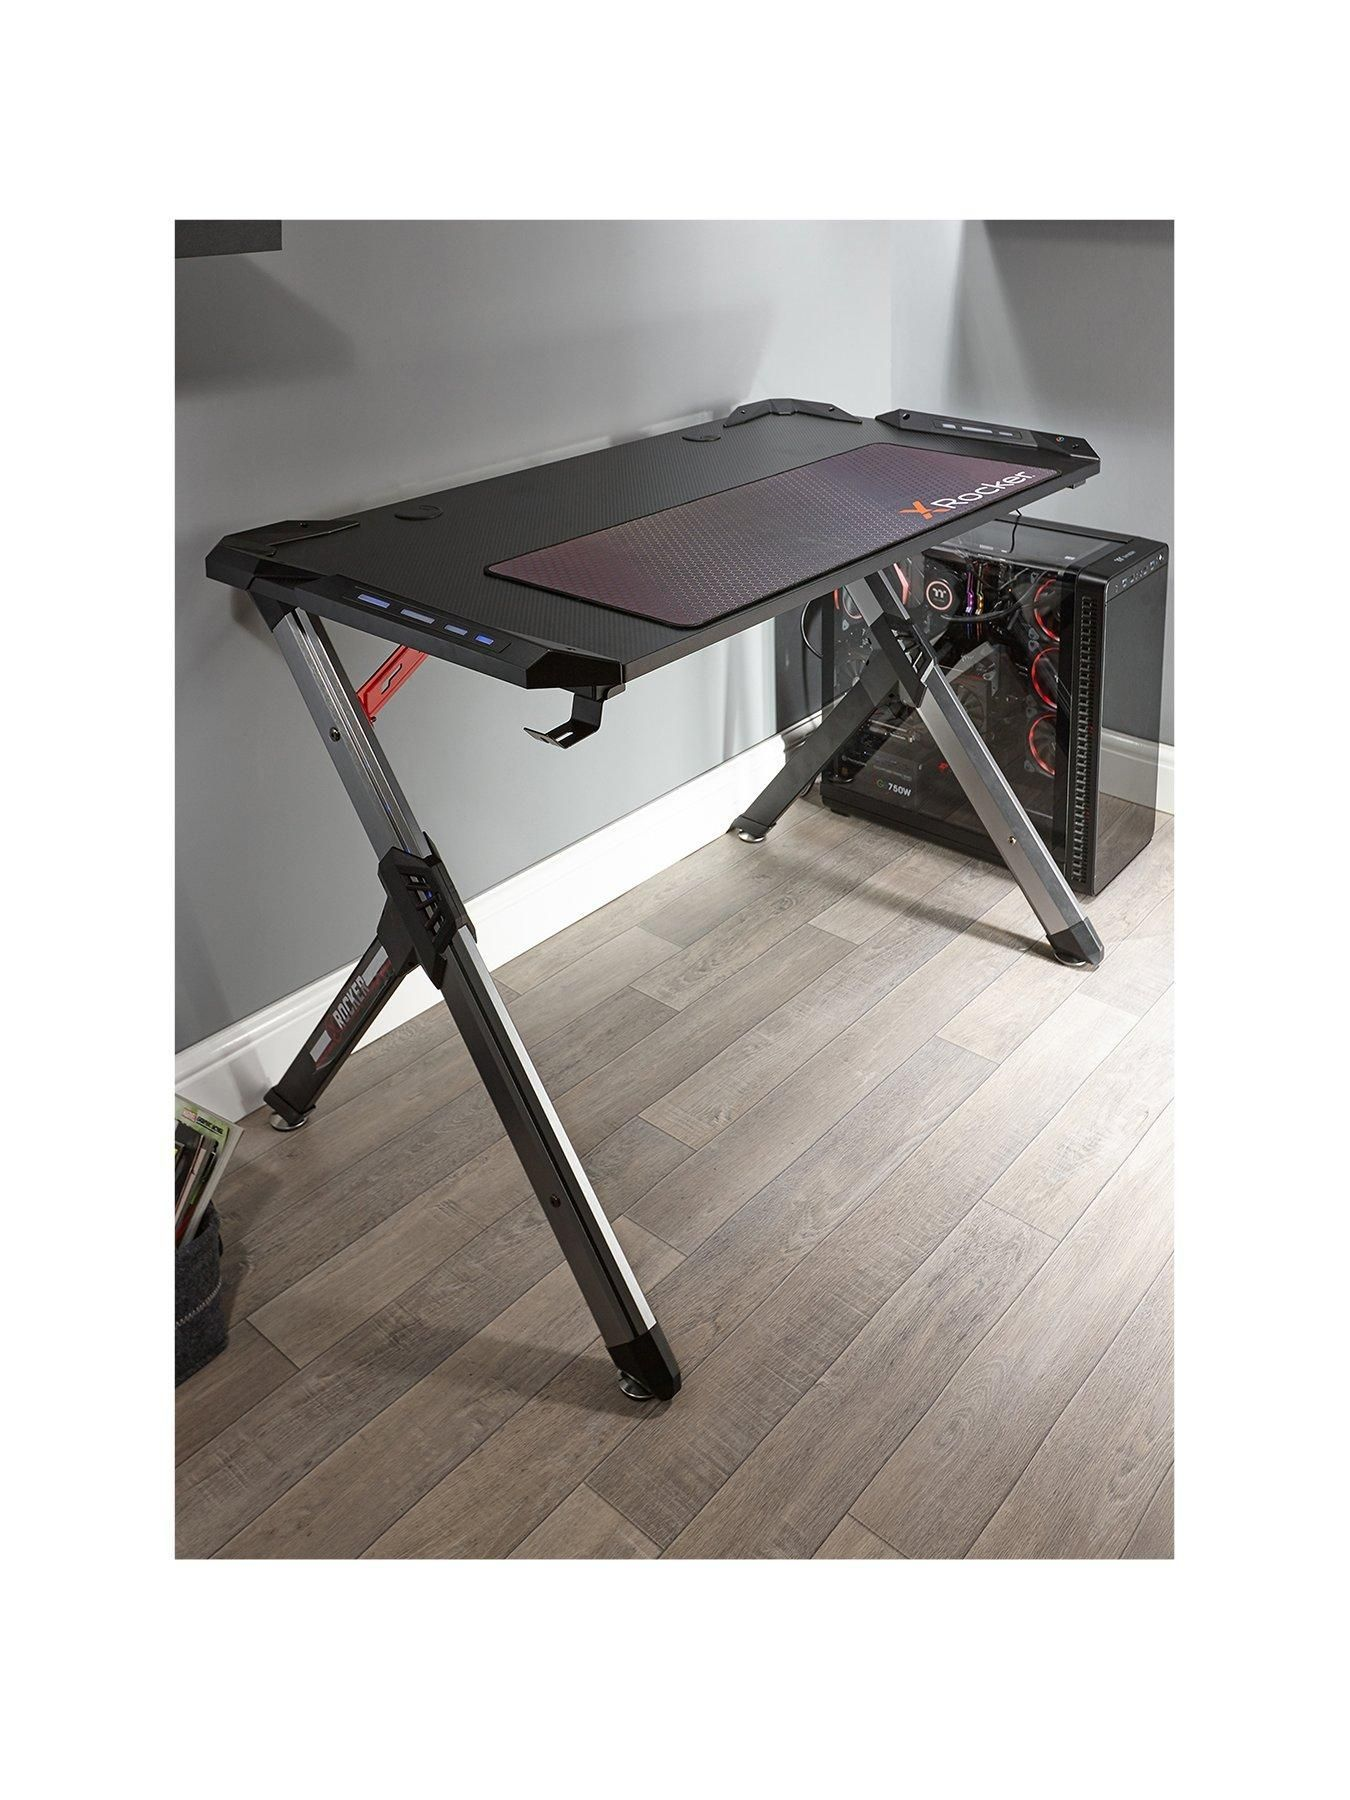 X Rocker Lynx Pc Gaming Desk in Black #gamingdesk X Rocker Lynx Pc Gaming Desk in Black #gamingdesk